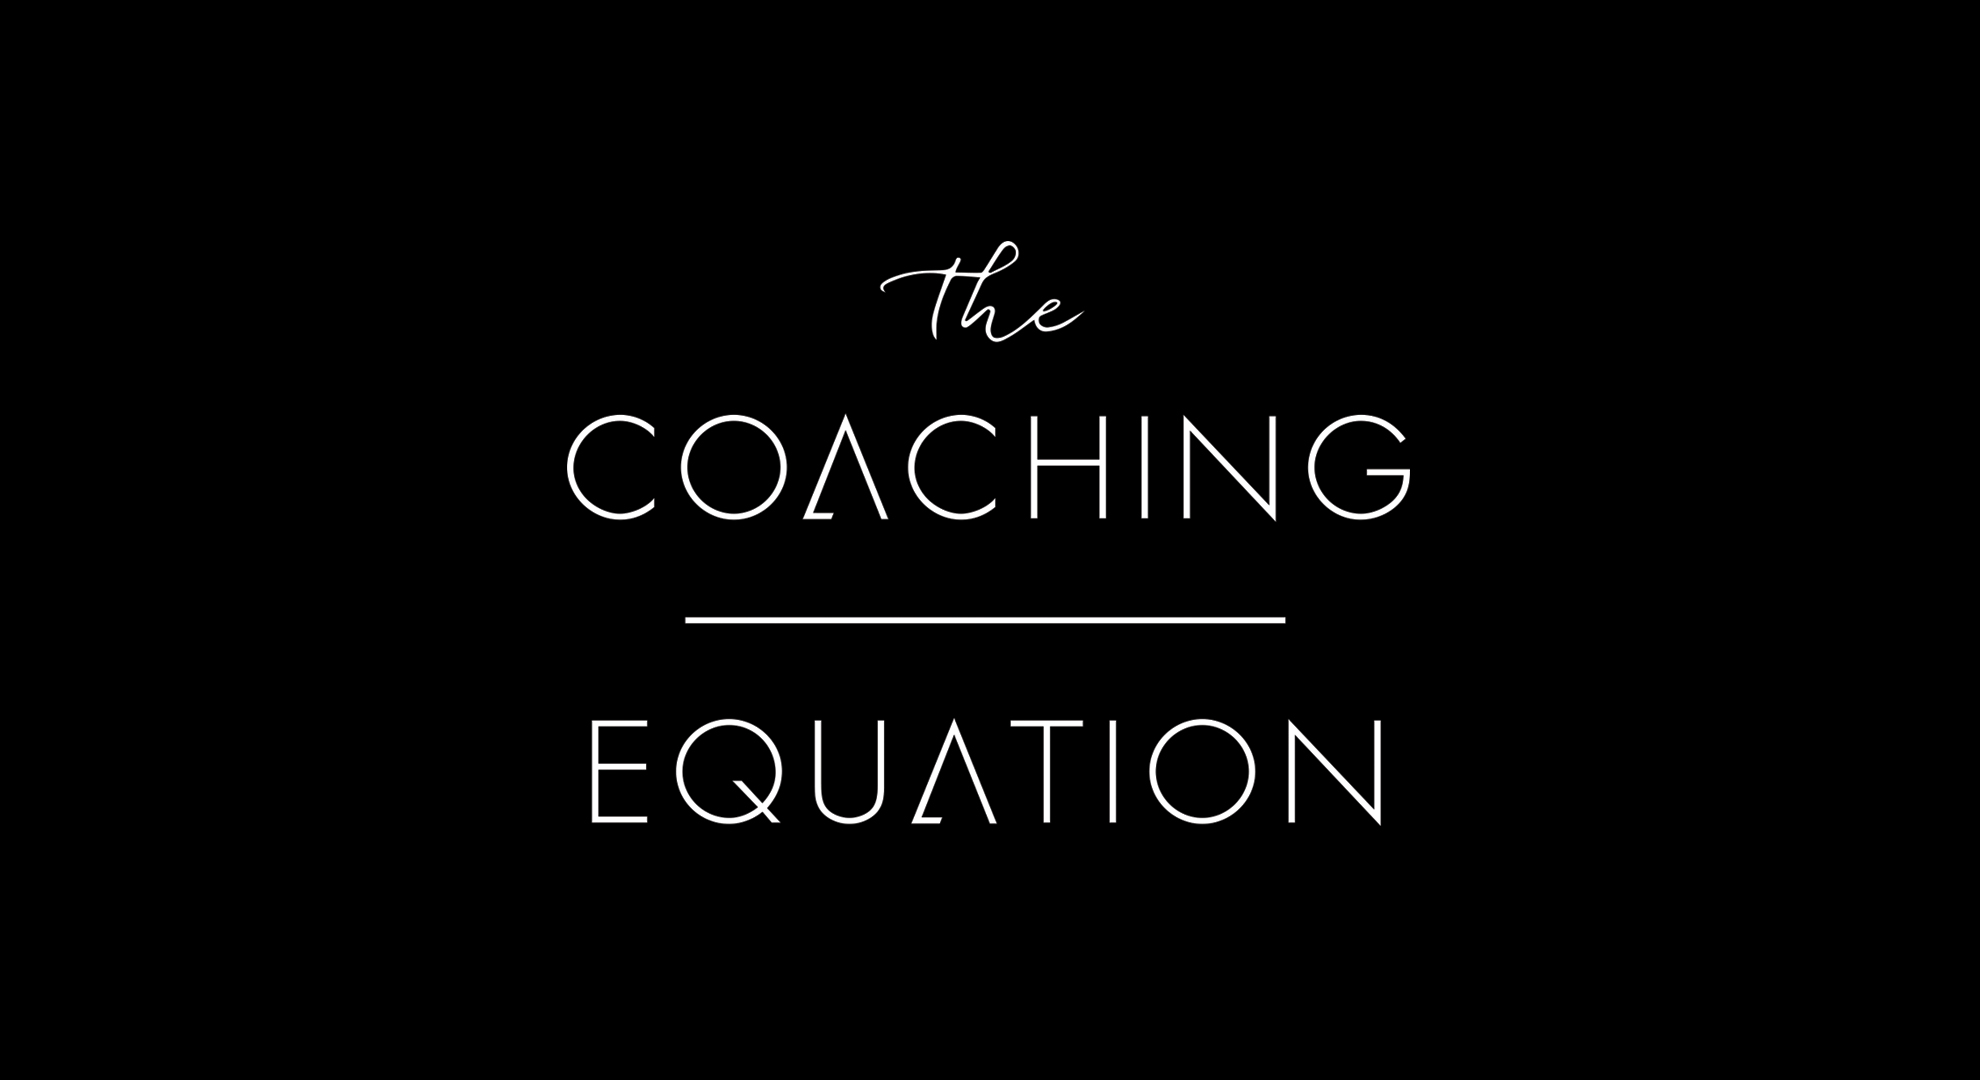 Cover image: The Coaching Equation